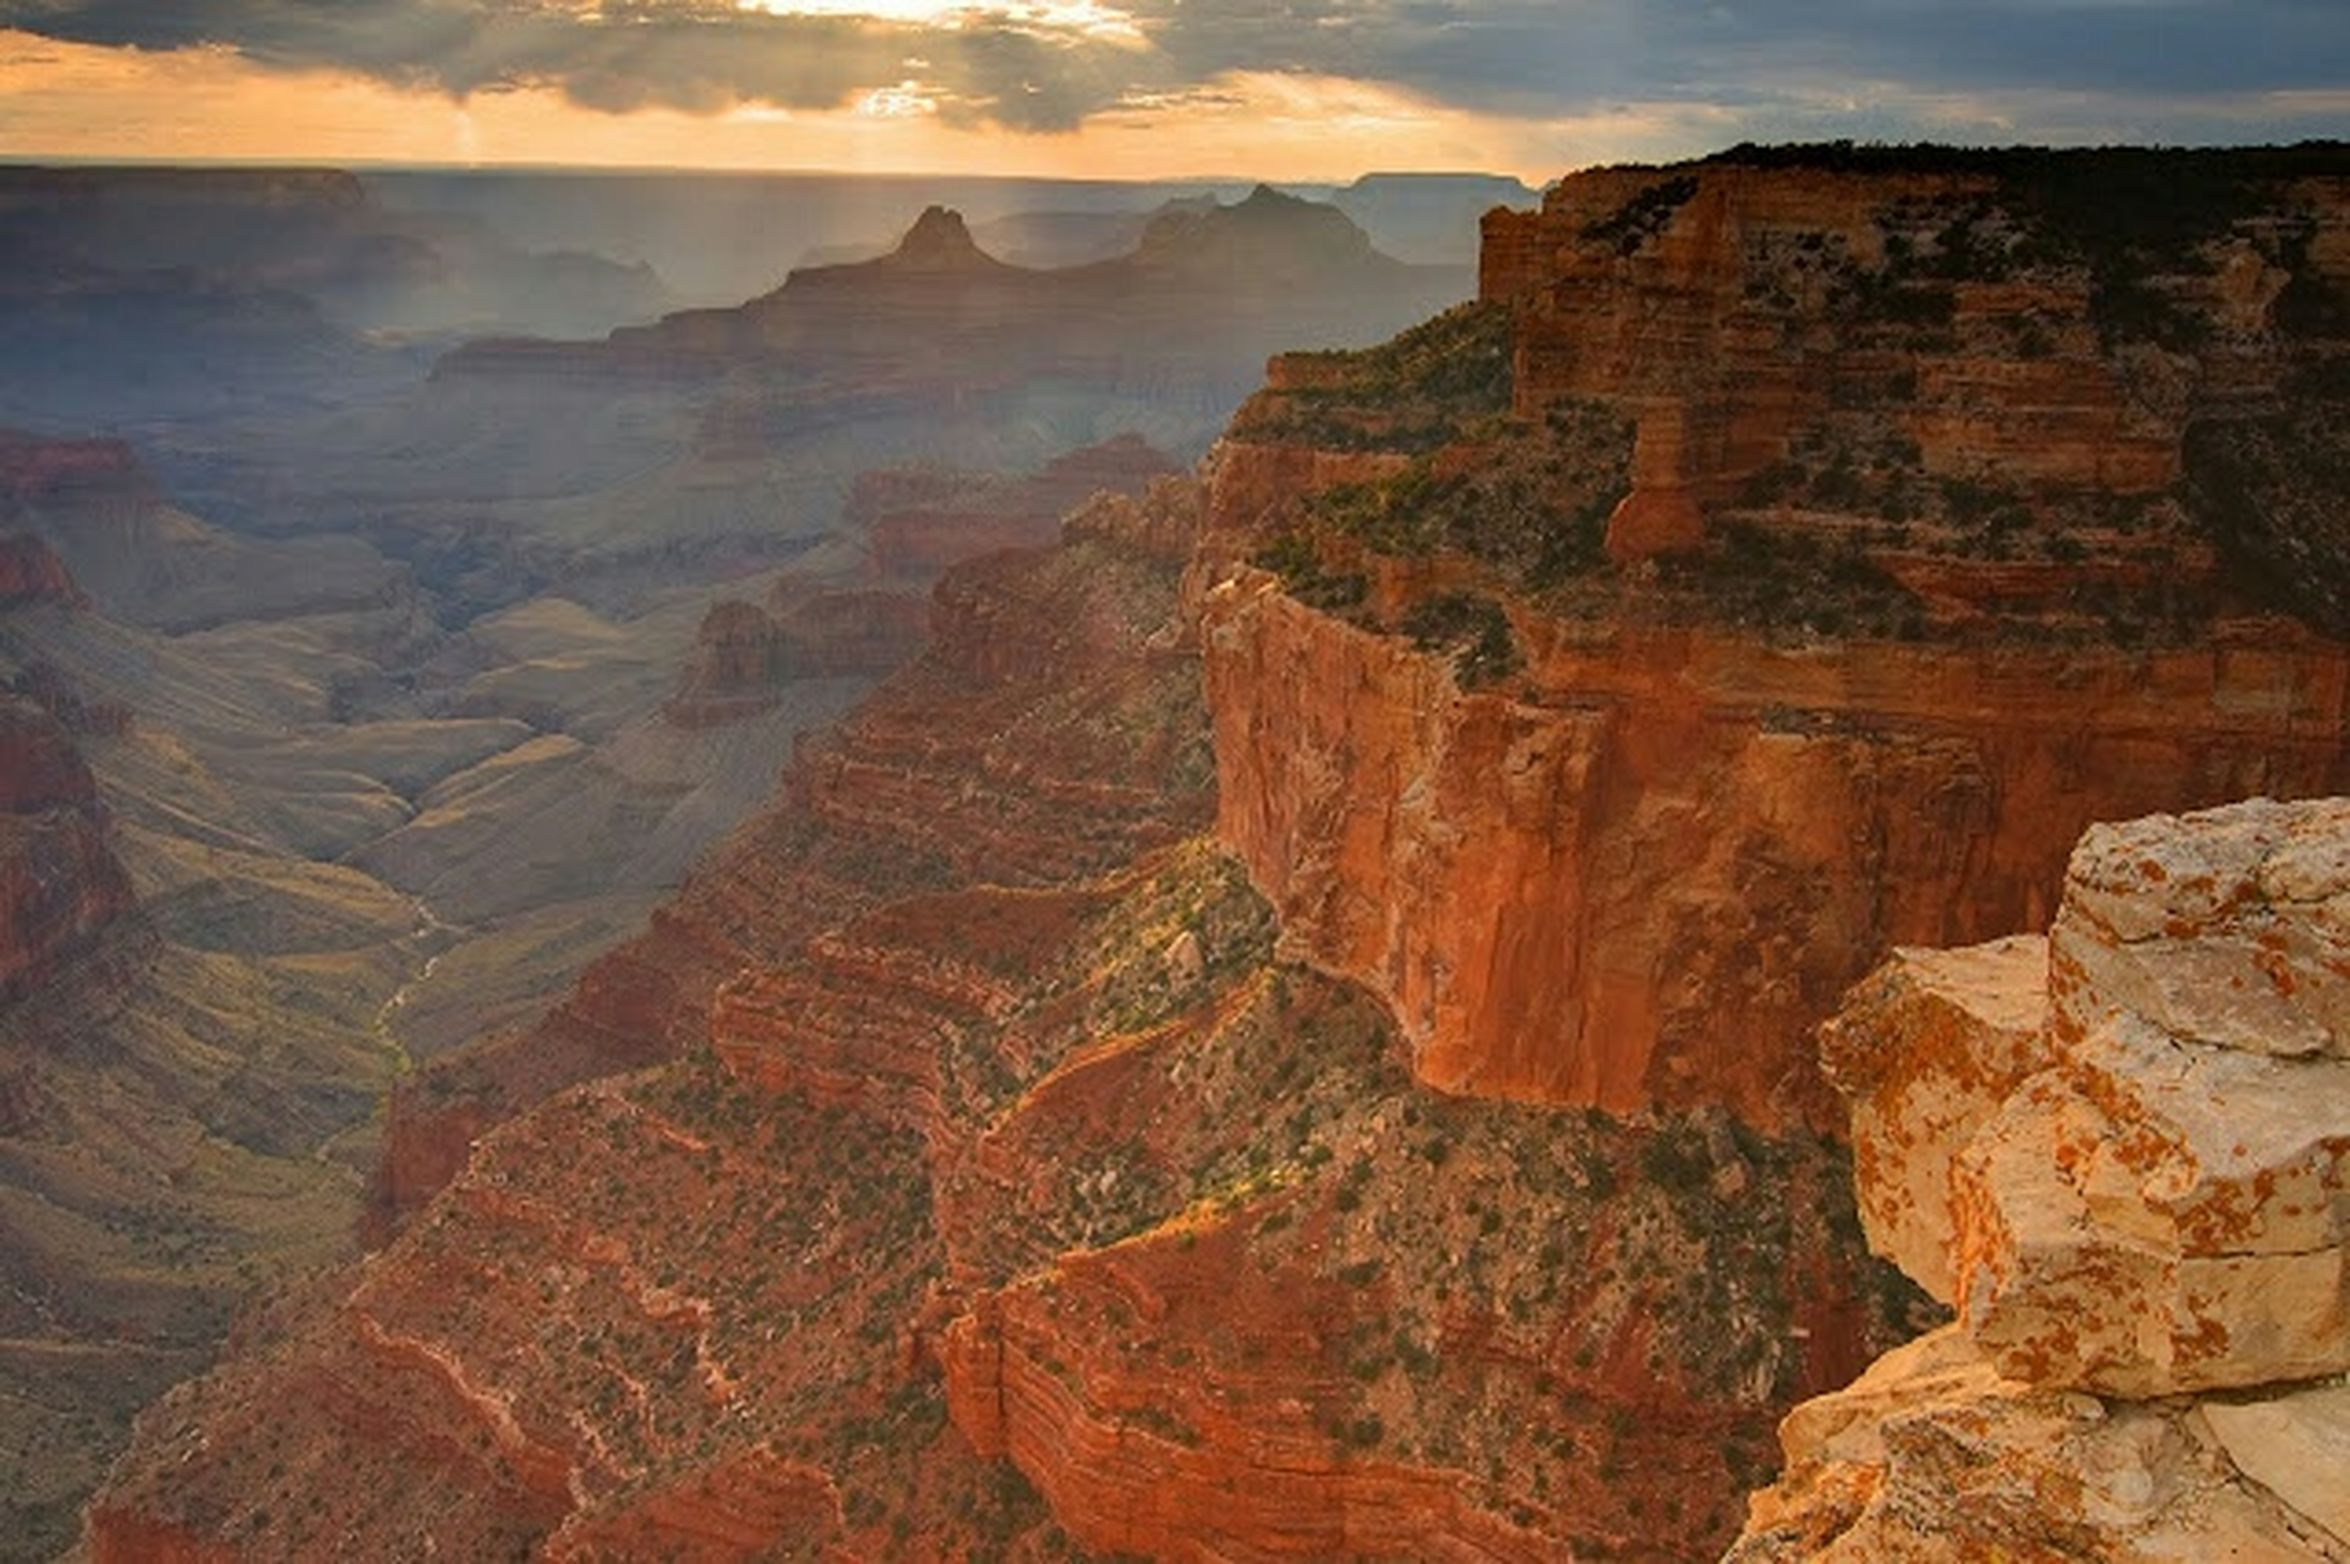 Grand Canyon Grand Canyon, South Rim Scenery Scenic View Nature Beautiful Nature Notes From The Underground Melancholic Landscapes Stuff I See Stuf I See